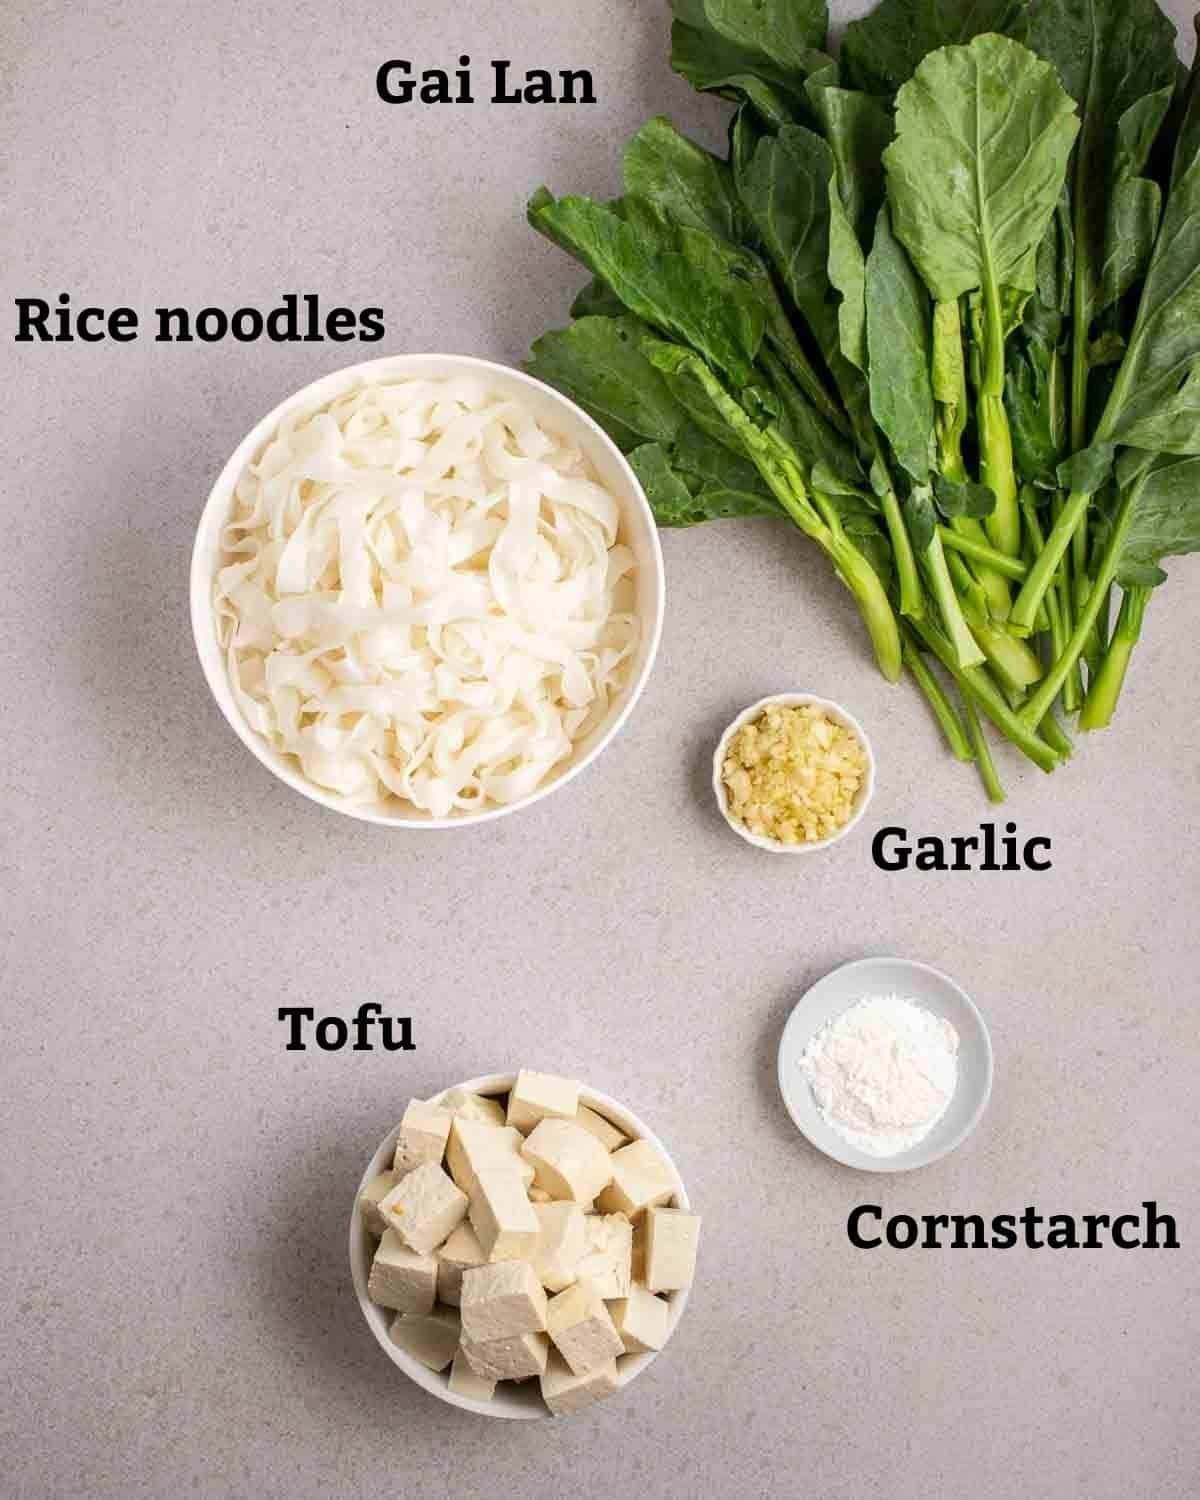 Ingredients needed like gai lan, rice noodles, tofu, garlic and cornstach on a grey background.